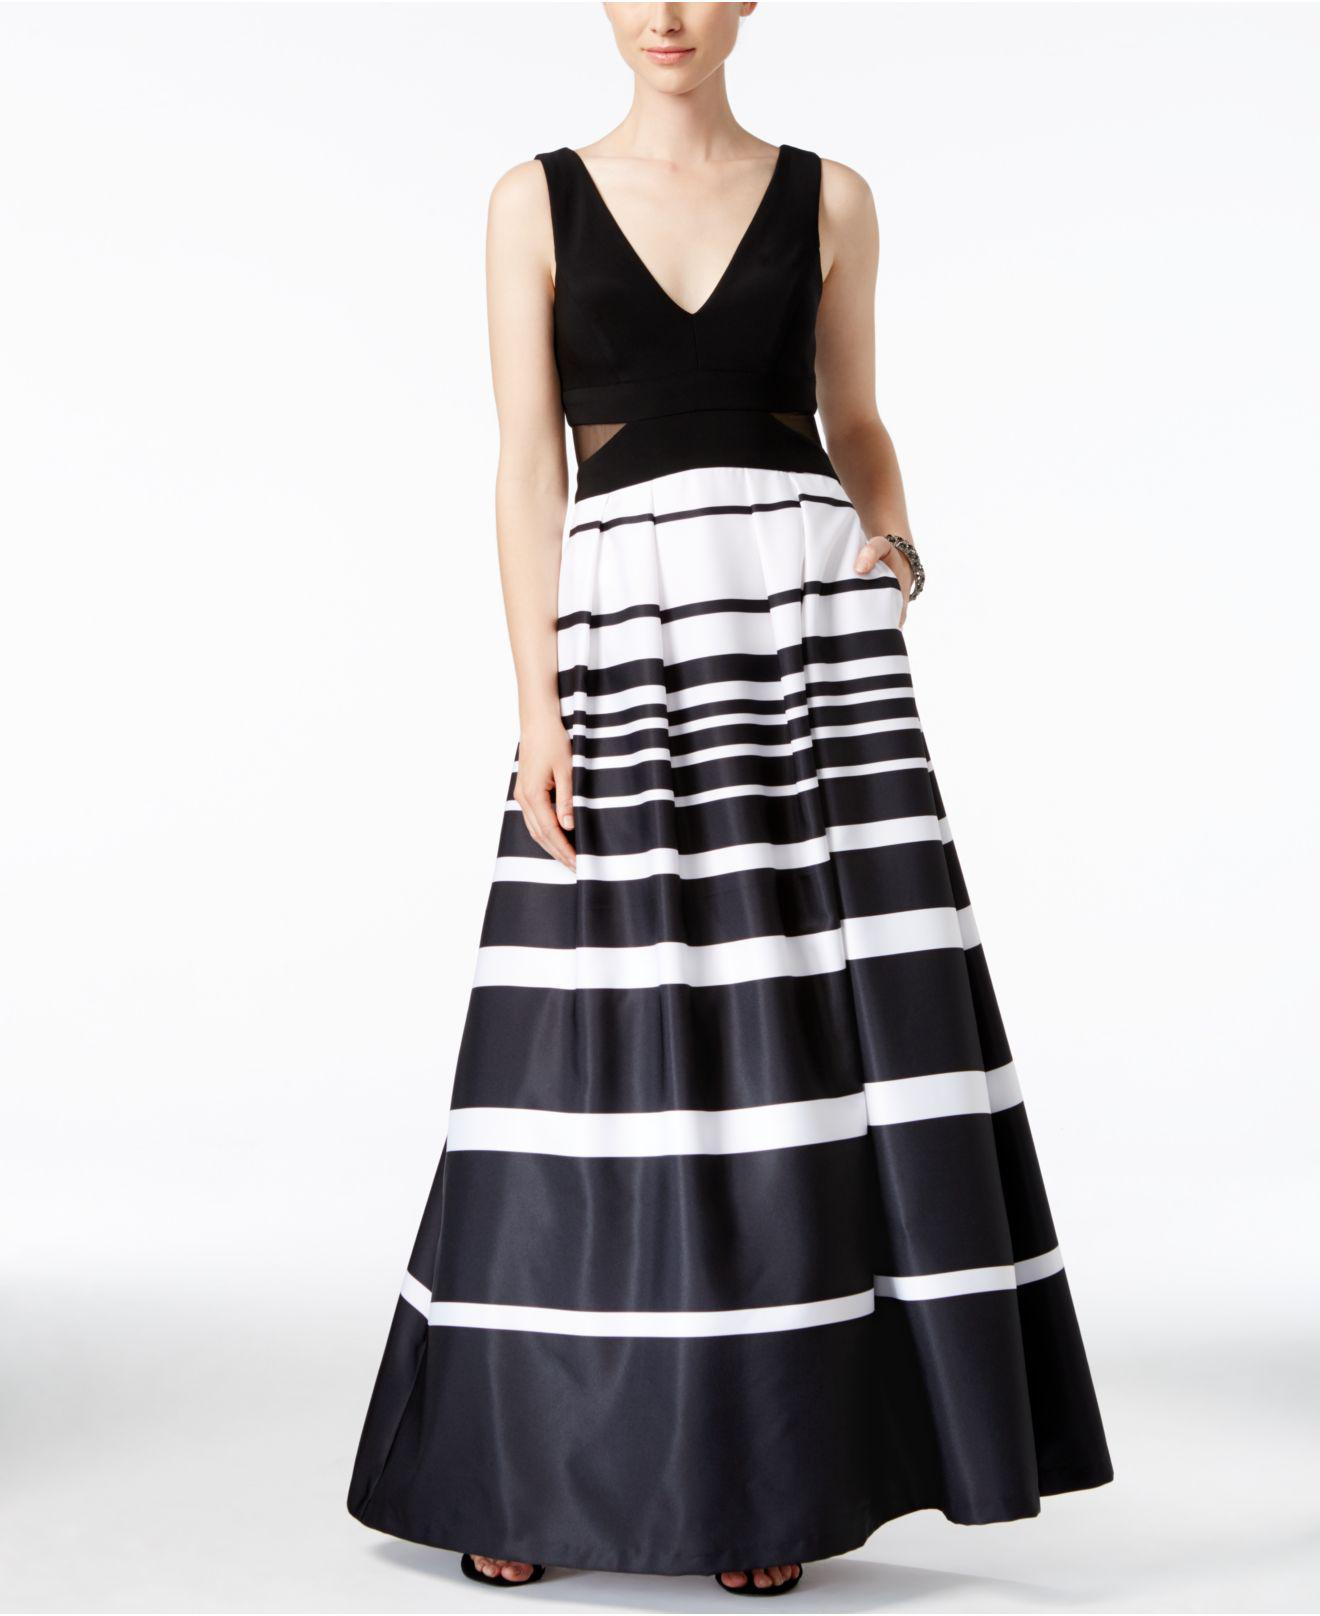 Lyst - Xscape Petite Illusion-inset Striped Ball Gown in White